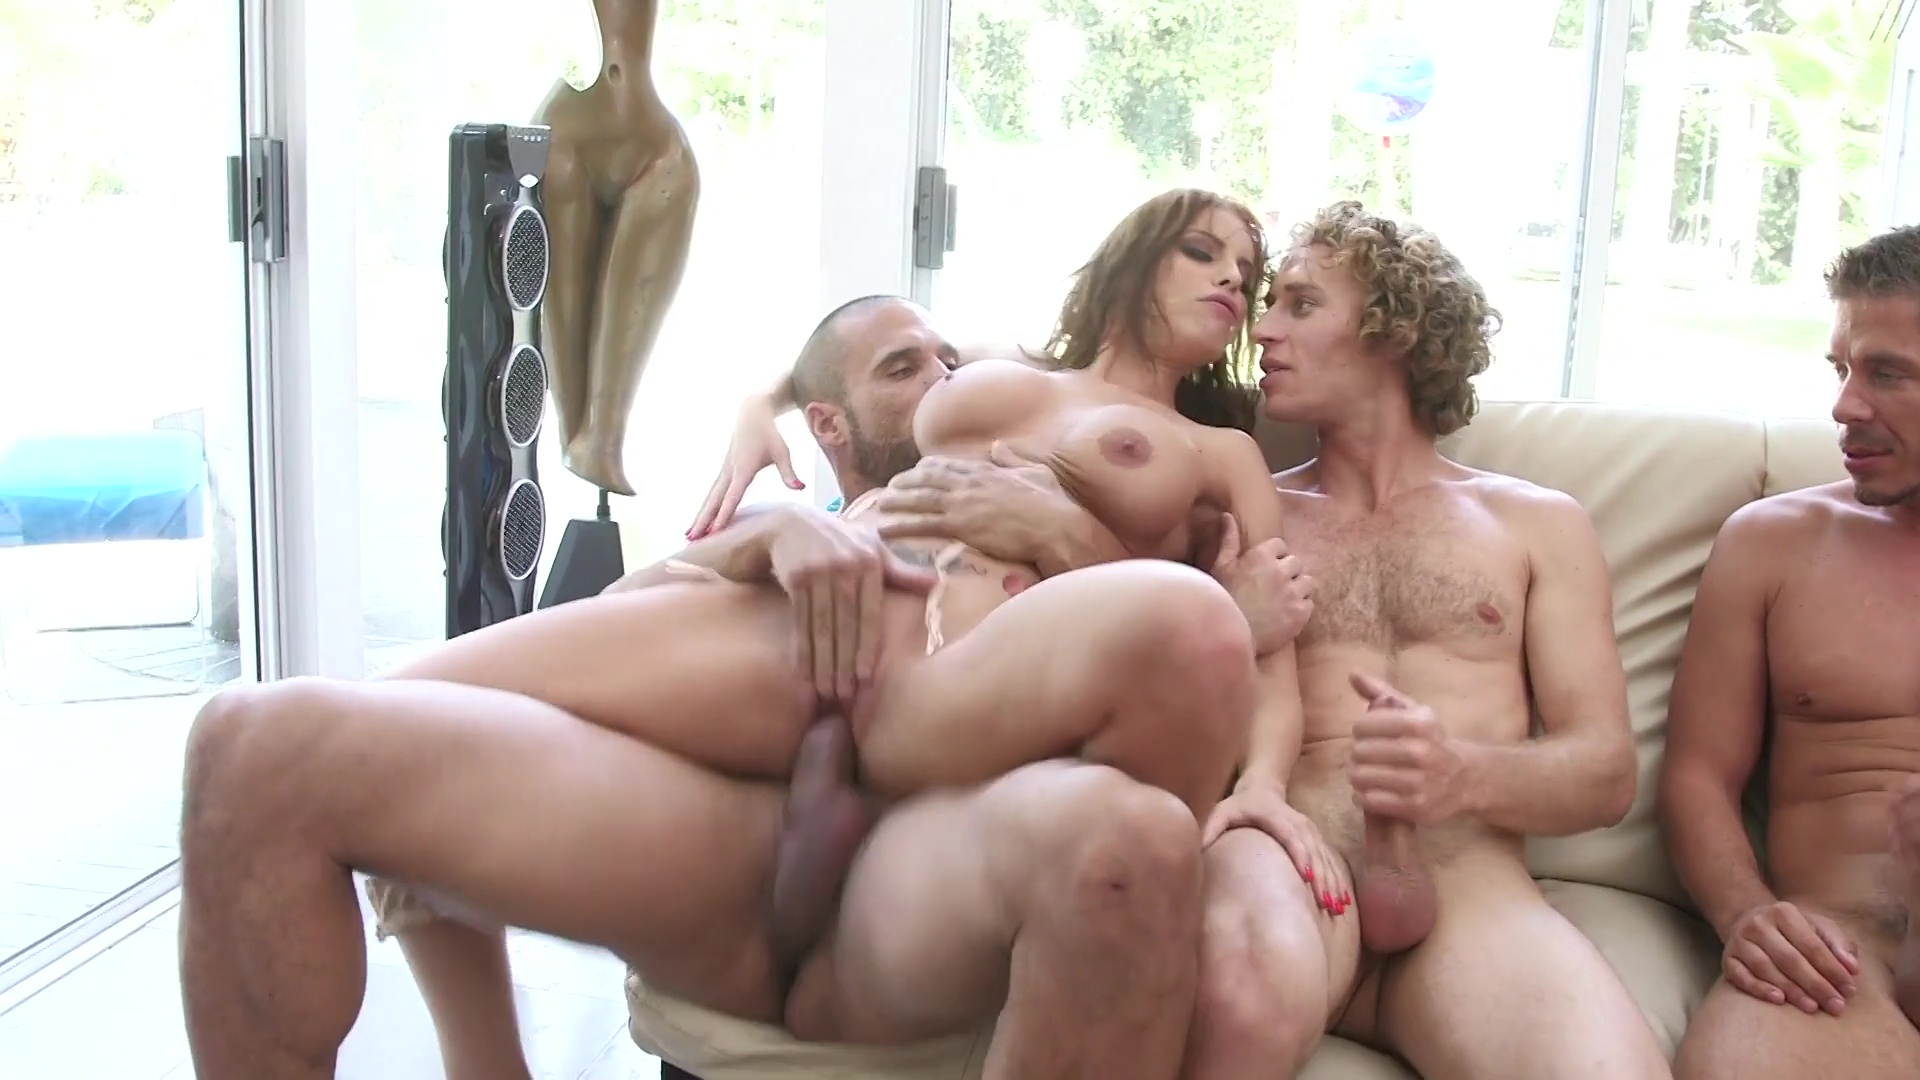 Apologise, Hot nude wives gangbang well